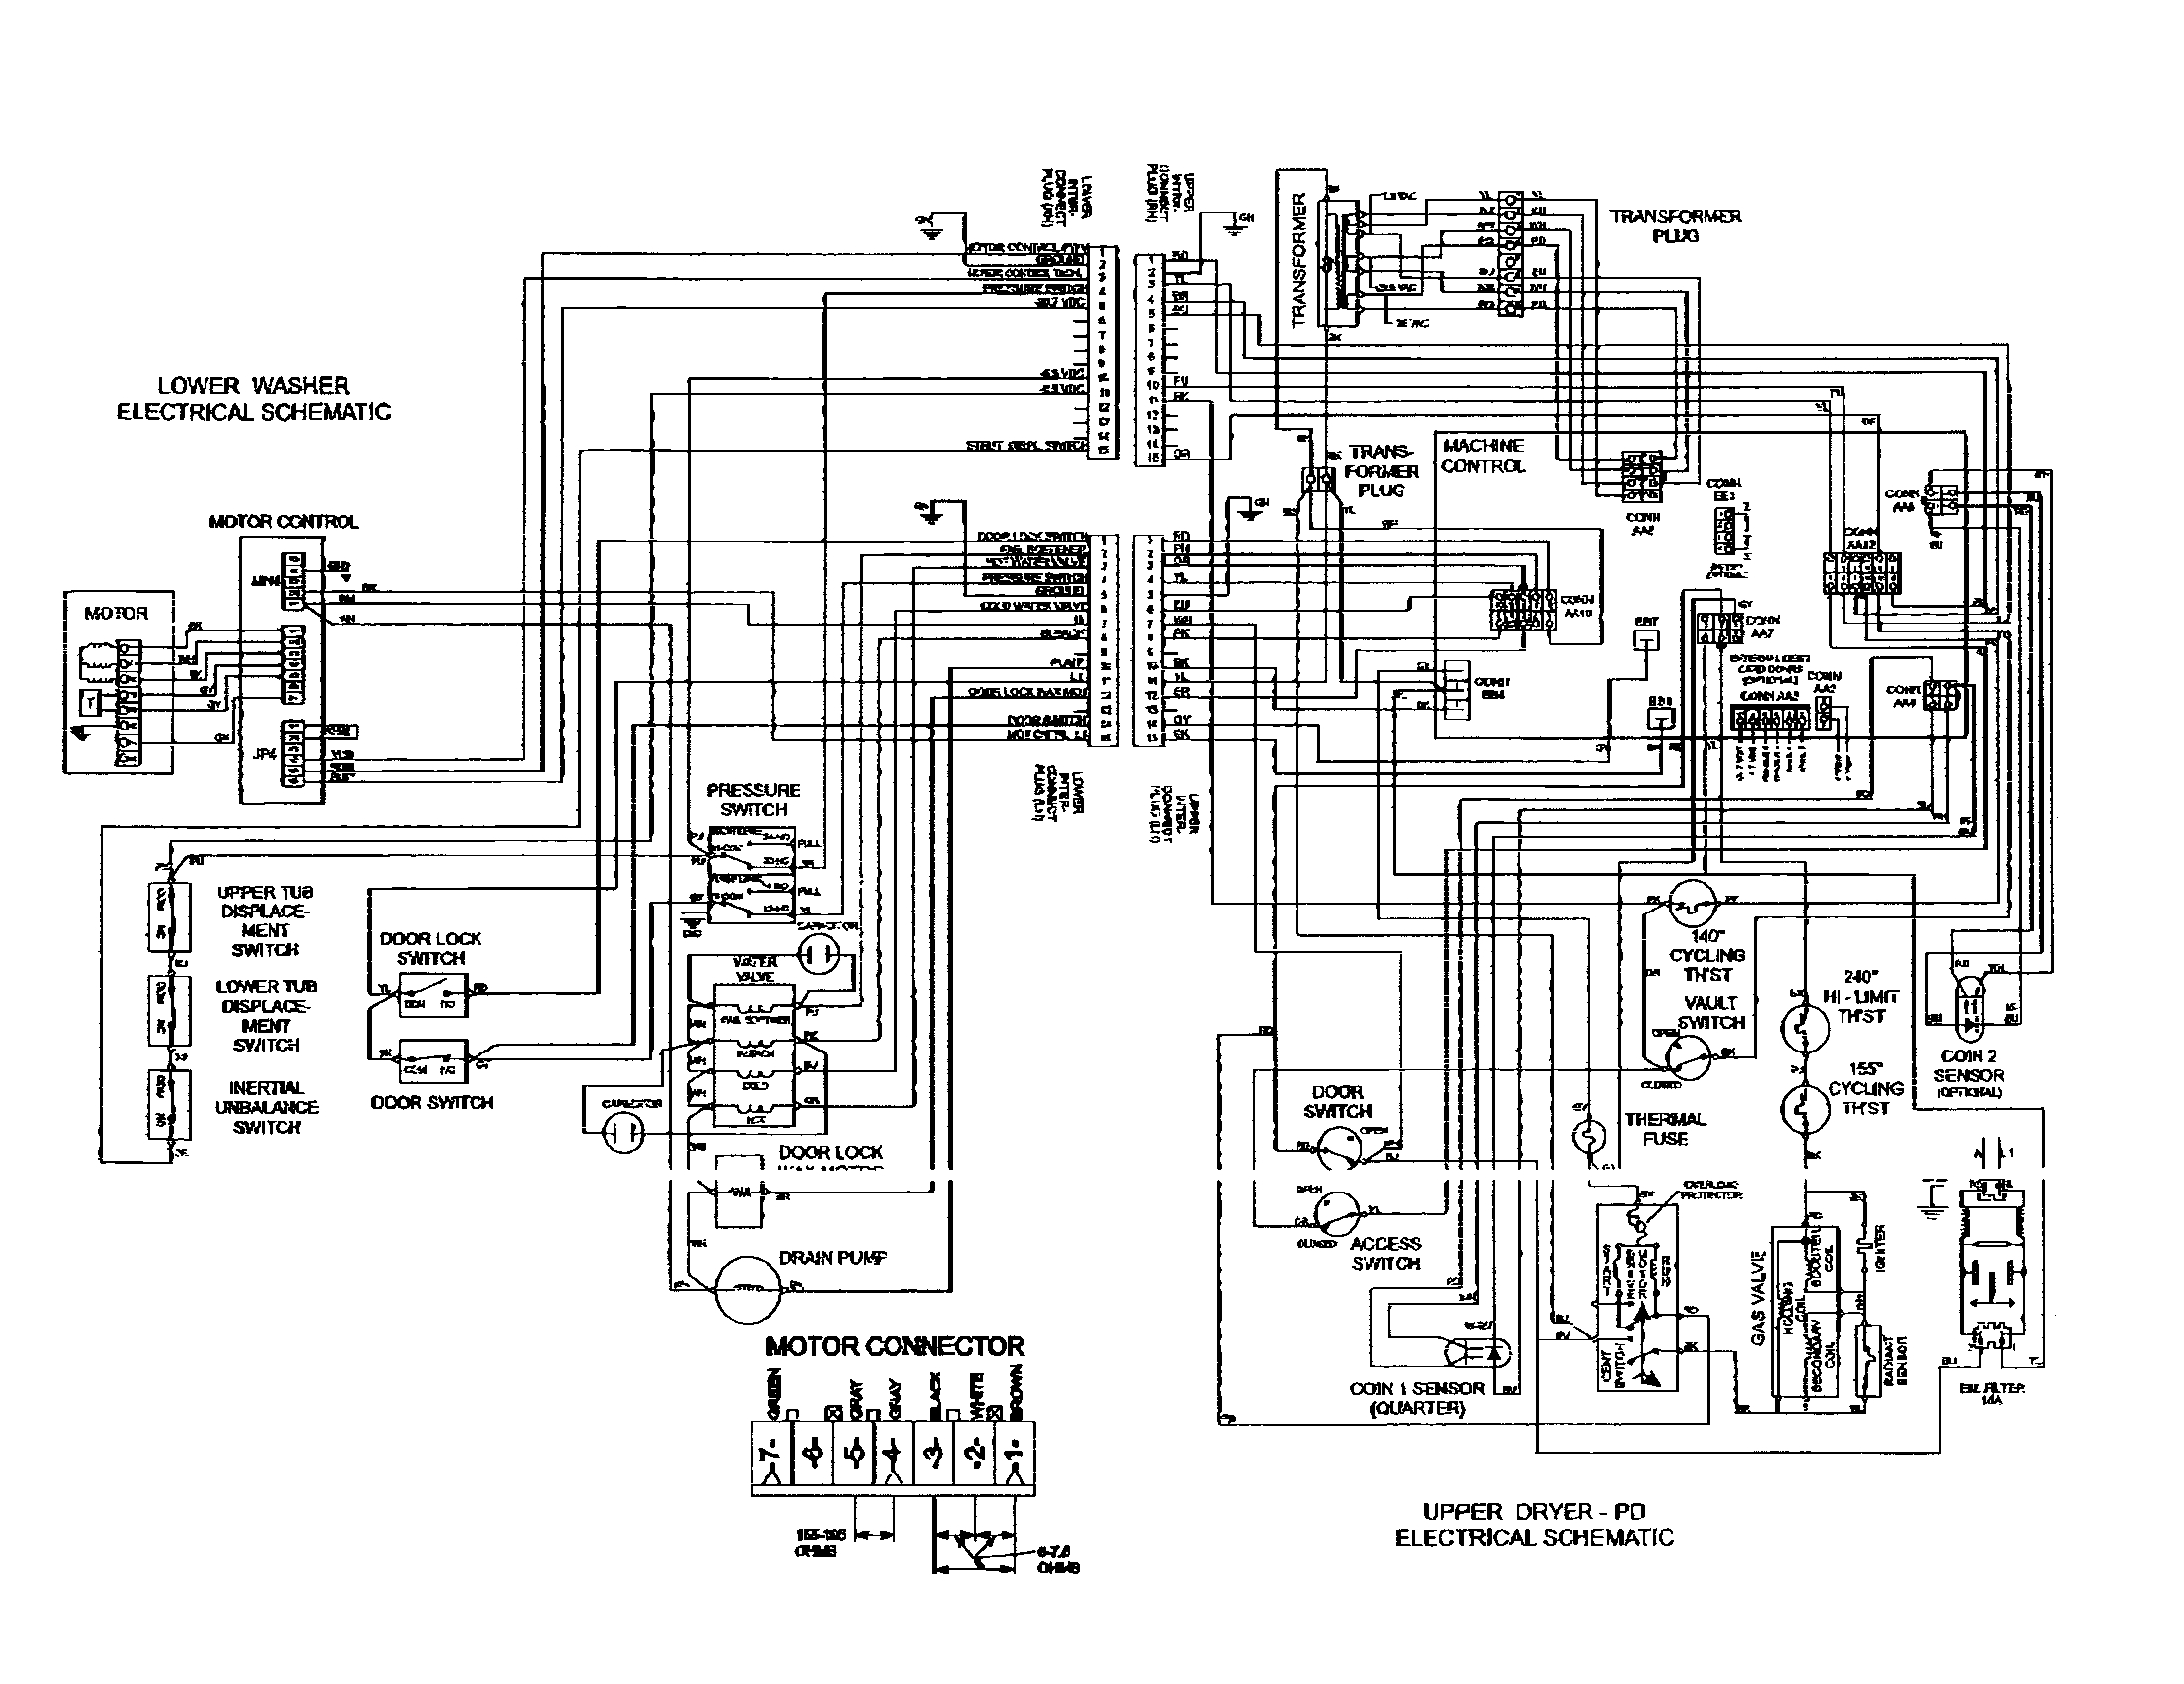 washing machine motor wiring diagram great white shark life cycle maytag centennial washer collection